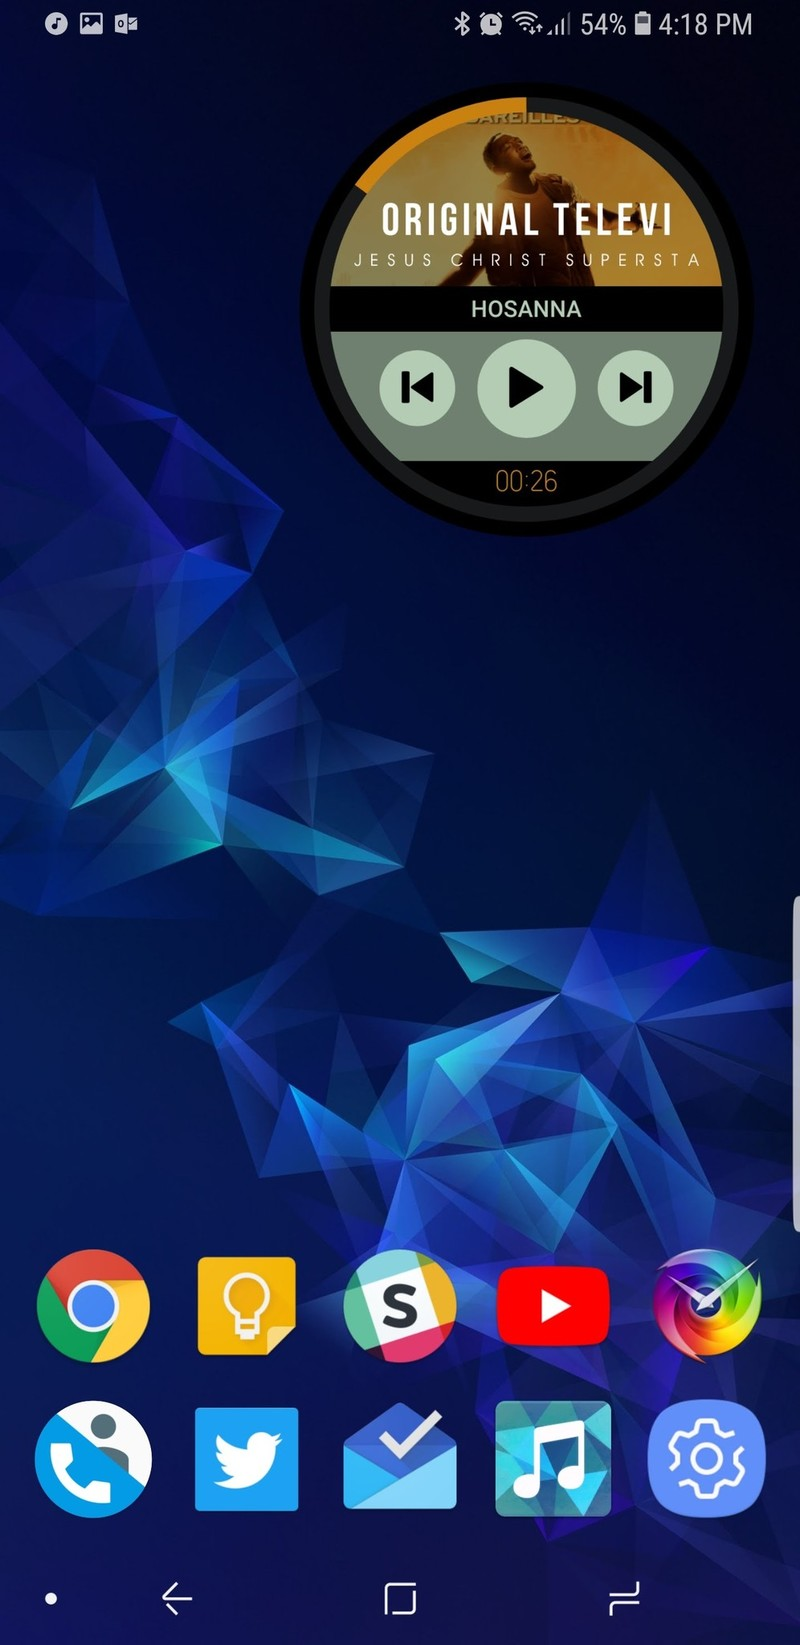 samsung-s9-text-scaling-chrome-1.jpg?ito